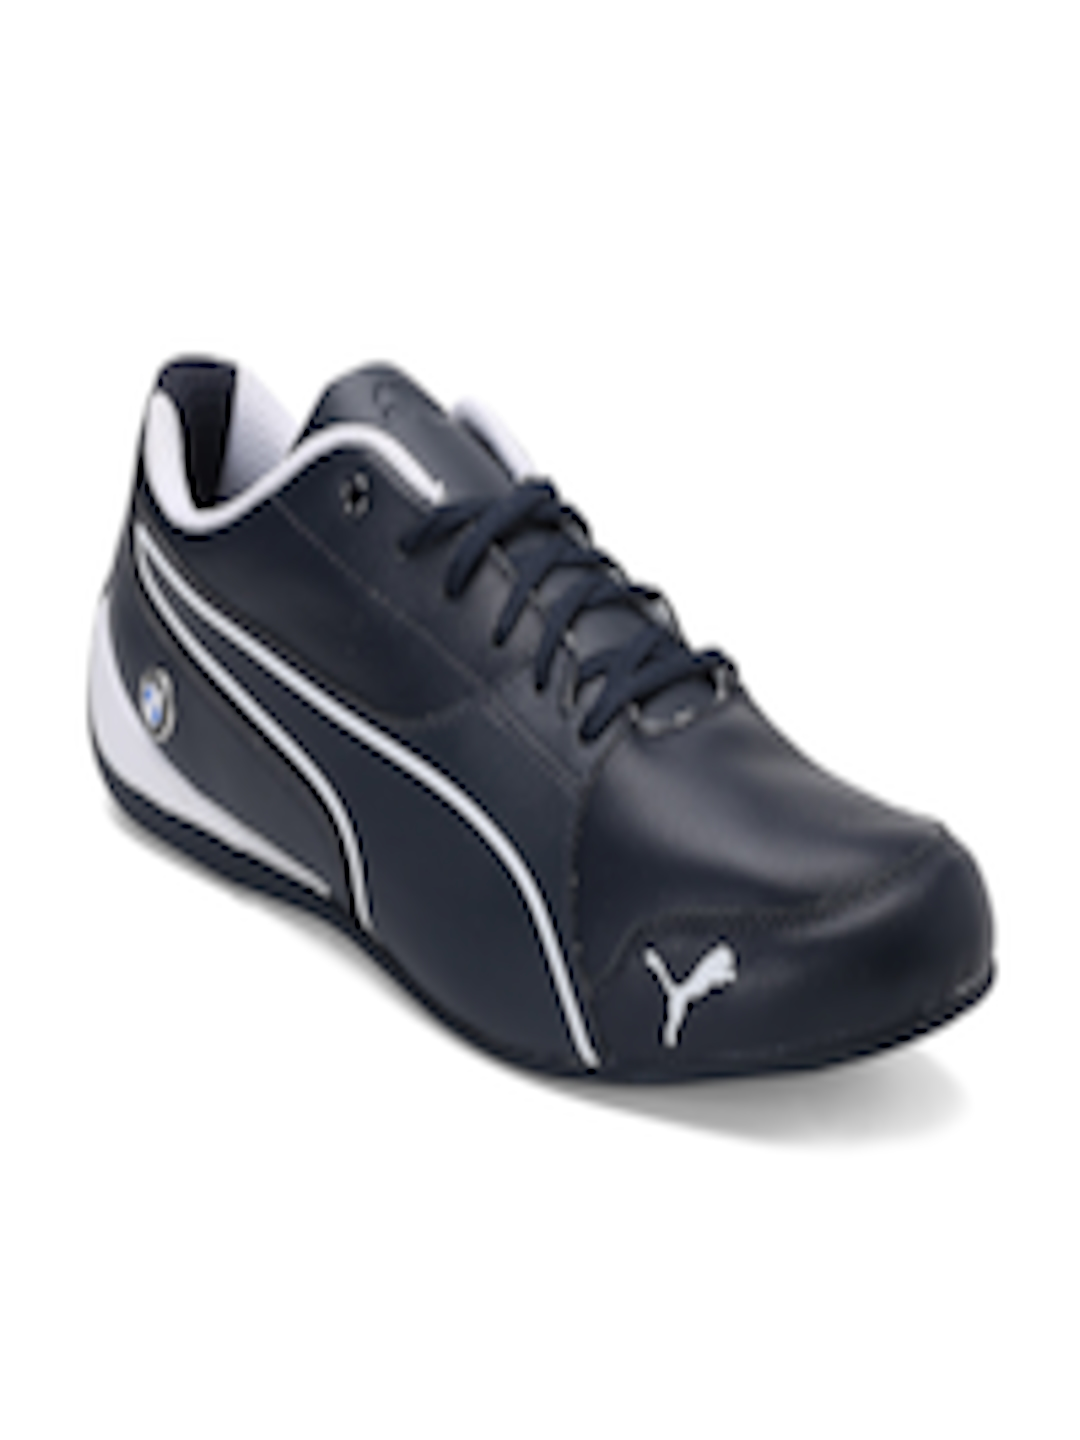 Buy Puma Unisex Navy BMW MS Drift Cat 7 Sneakers - Casual Shoes for Unisex  2041323  9db3ed2b0